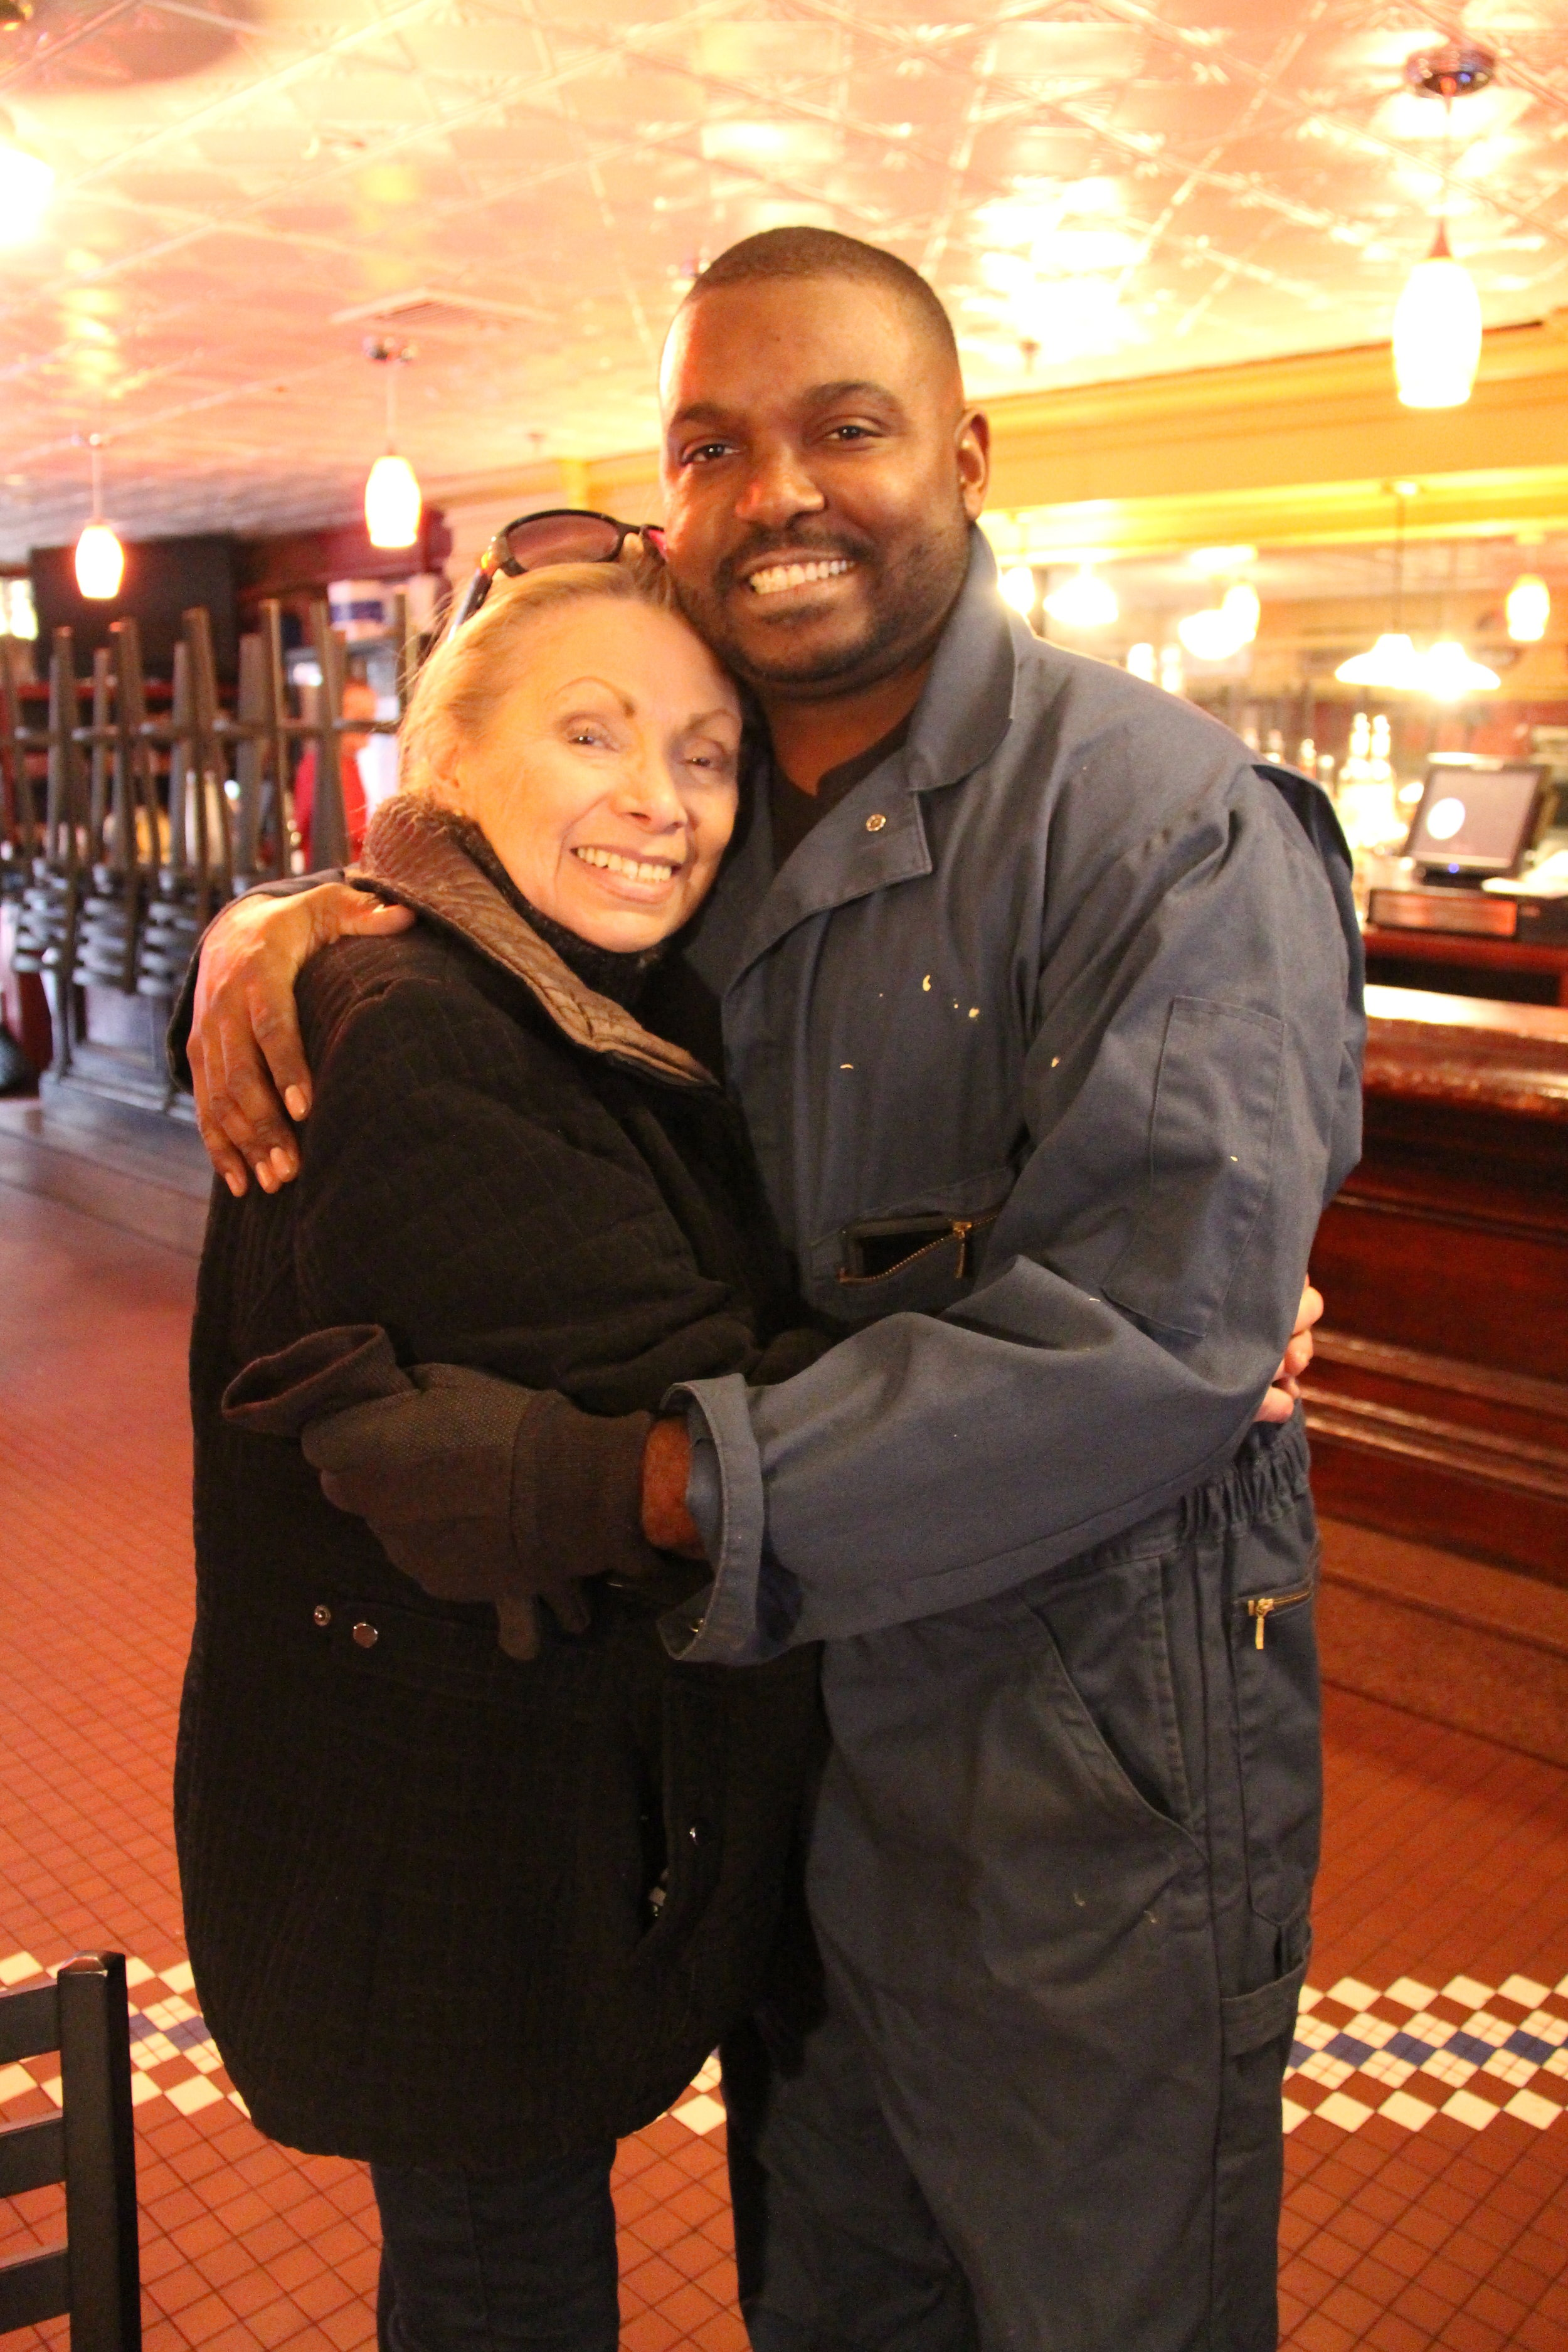 Gina Schertzer, head waitress, and Roberto Reyes, executive chef, give each other a quick embrace. Reyes, who was working alongside staff to dismantle the kitchen, stopped what he was doing just long enough to joke about who makes the best meatballs. Photo: Karen Bento